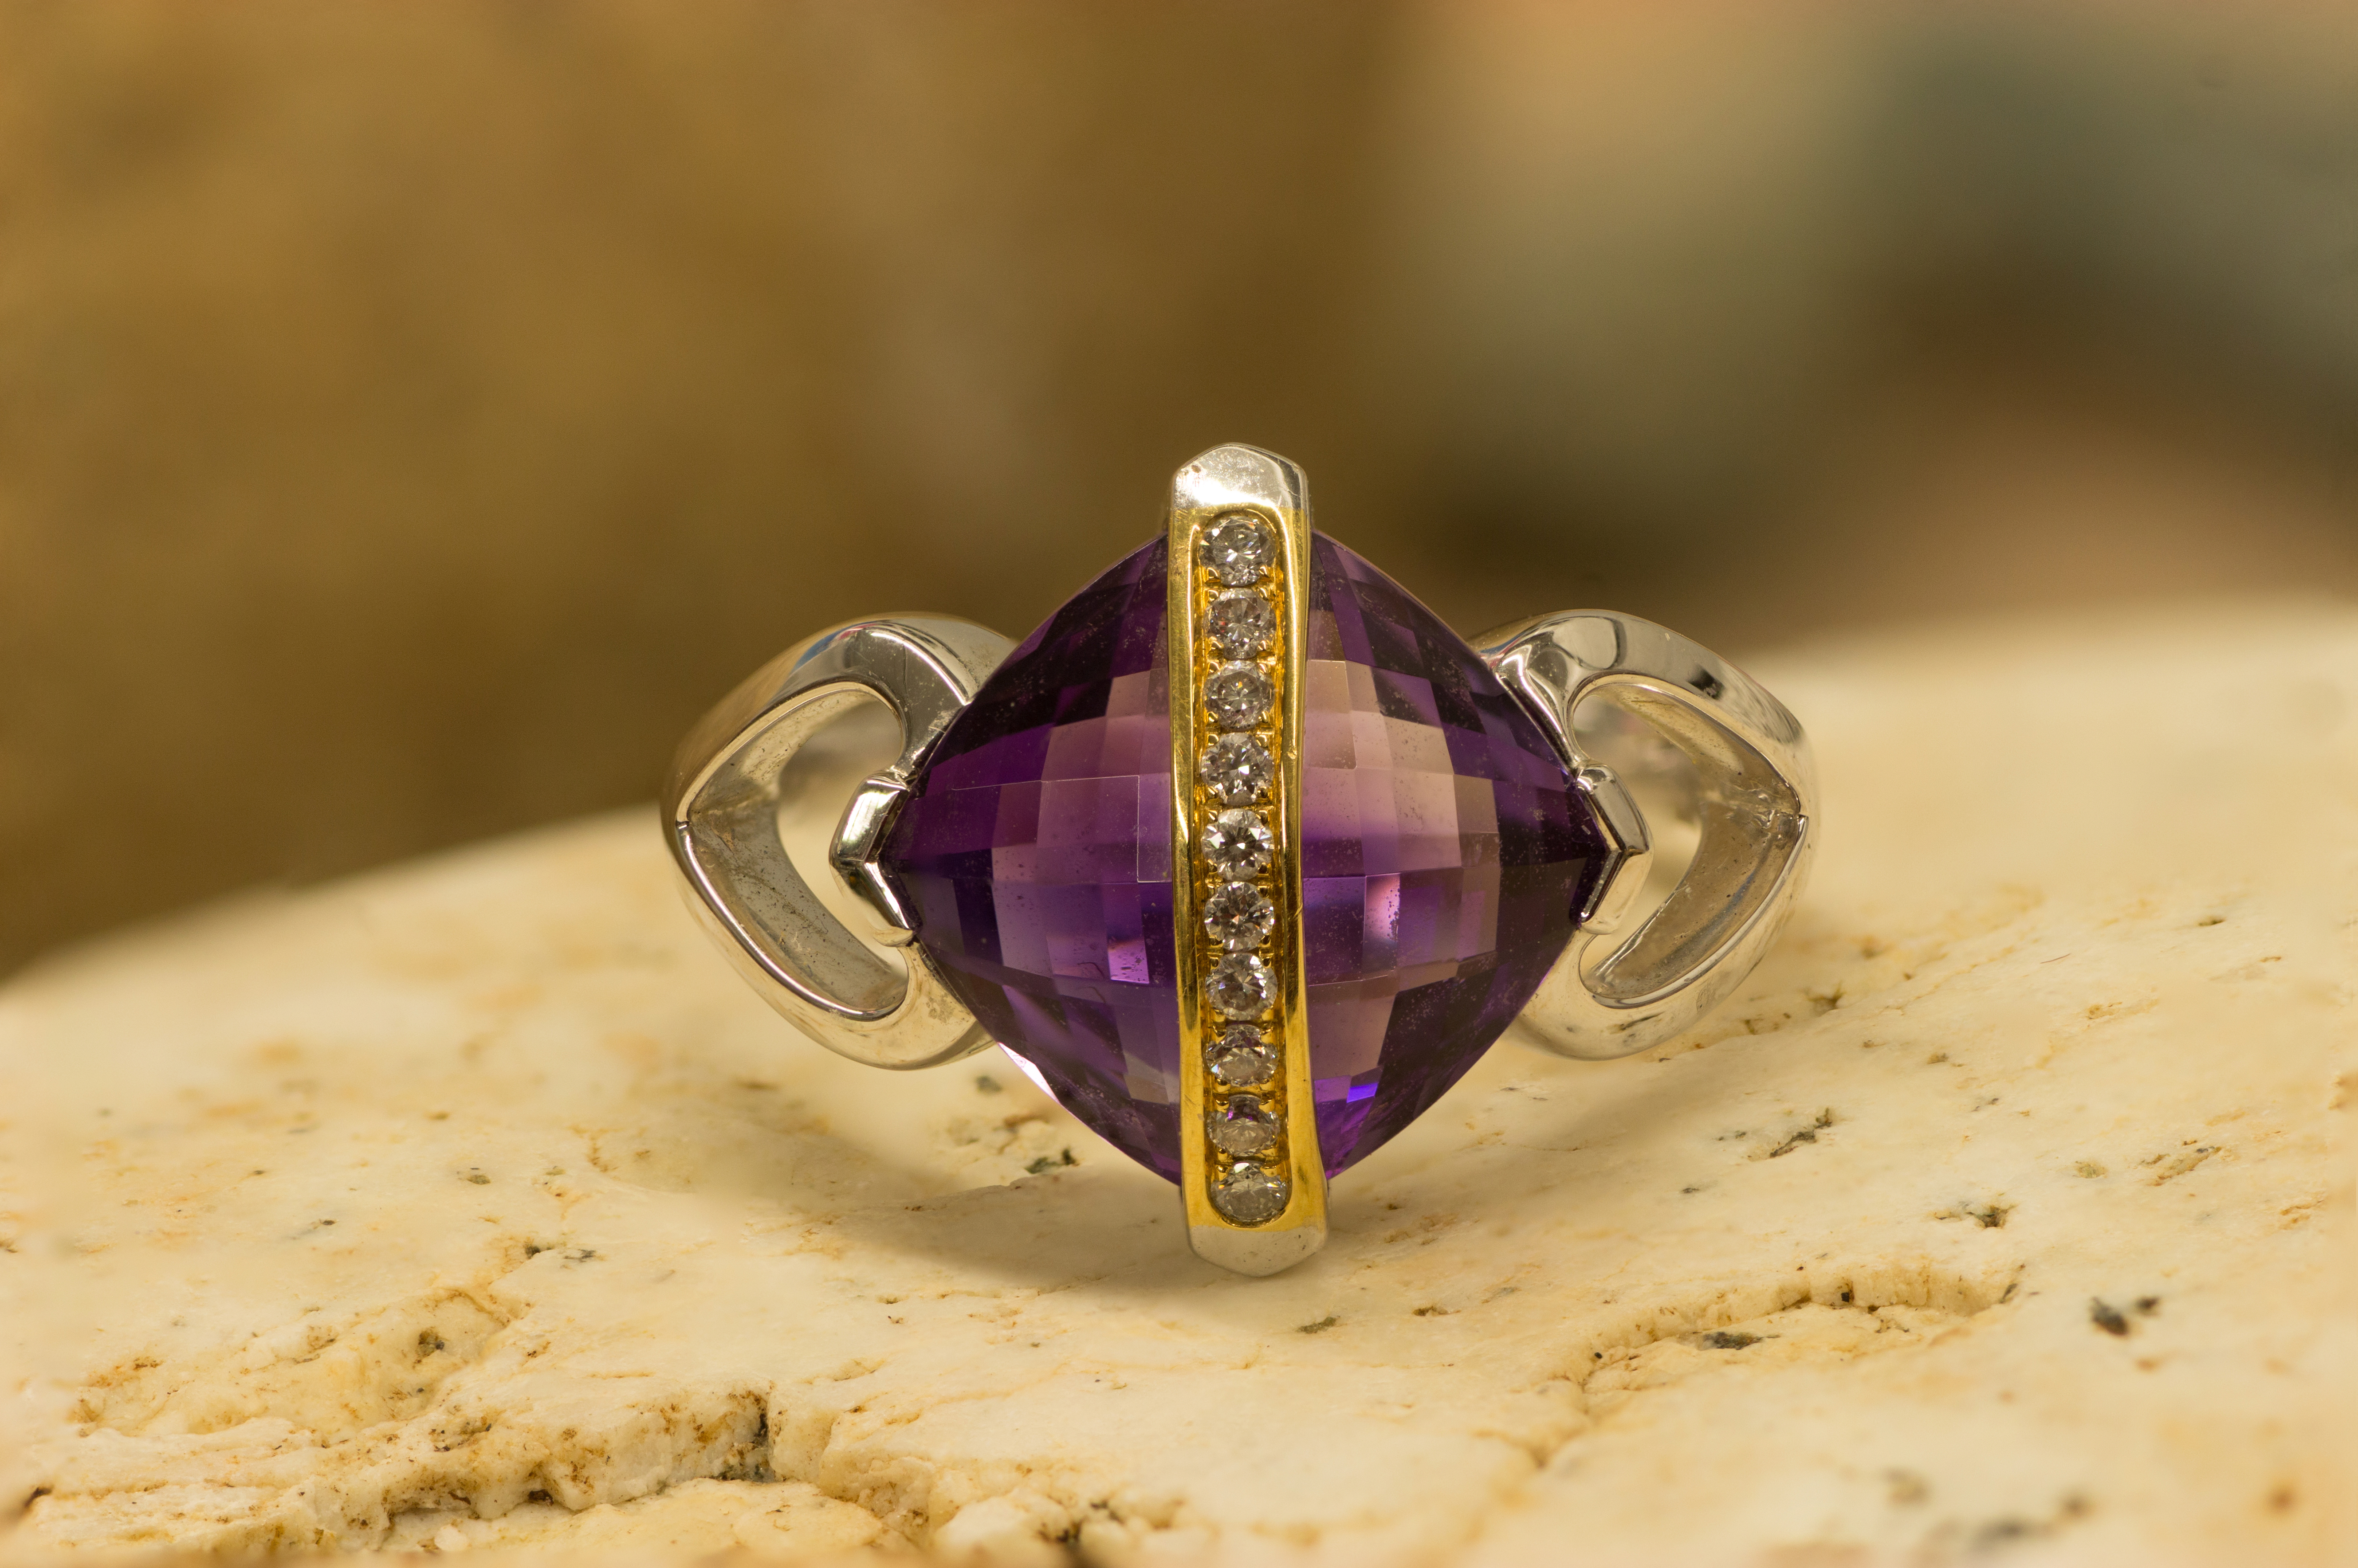 Unique Amethyst Ring in white and yellow gold.